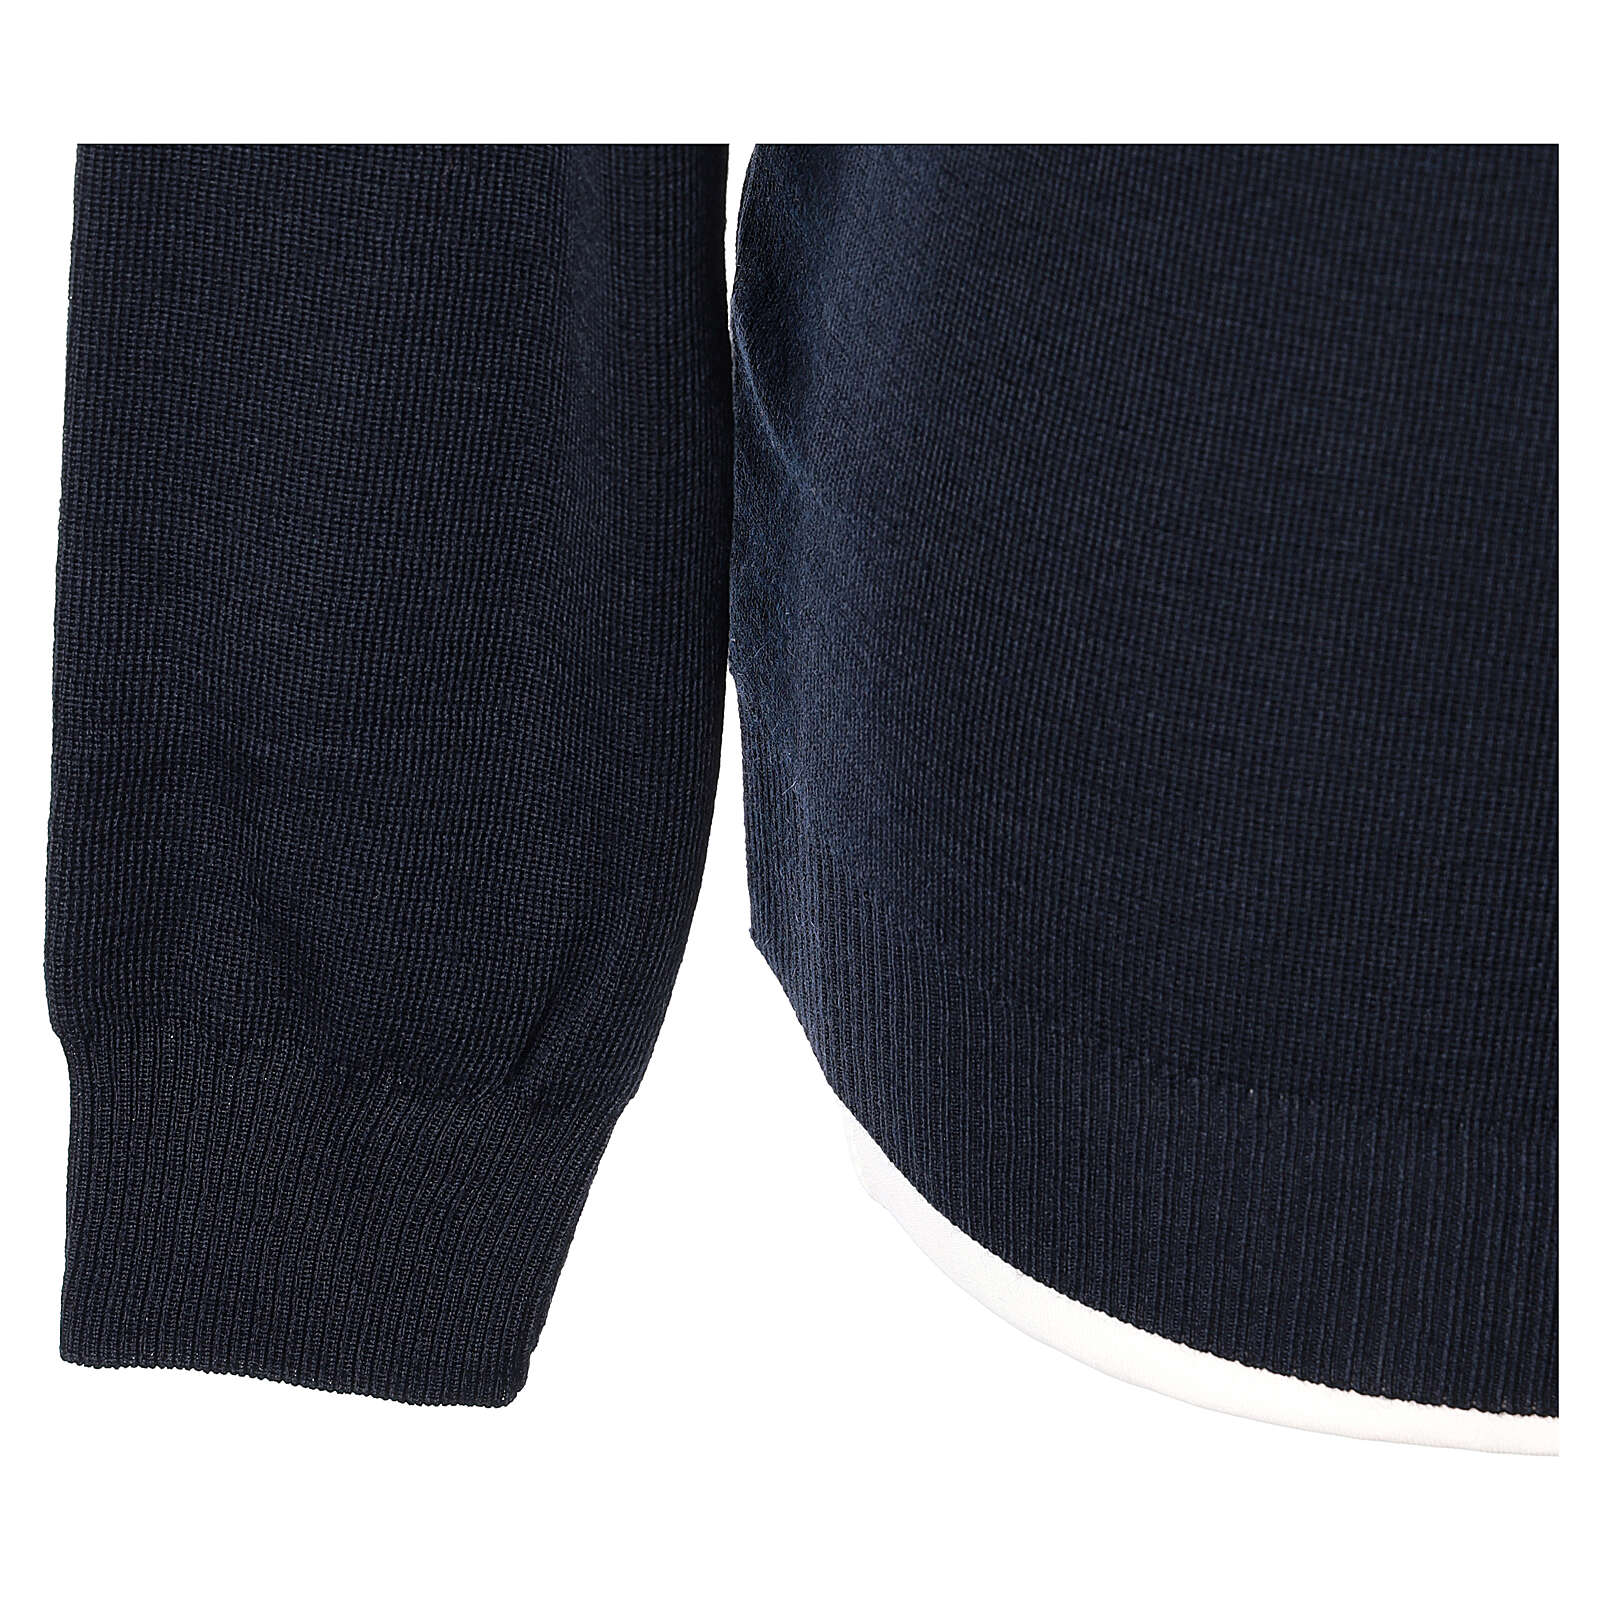 Crew neck clergy blue jumper plain fabric 50% acrylic 50% merino wool In Primis 4